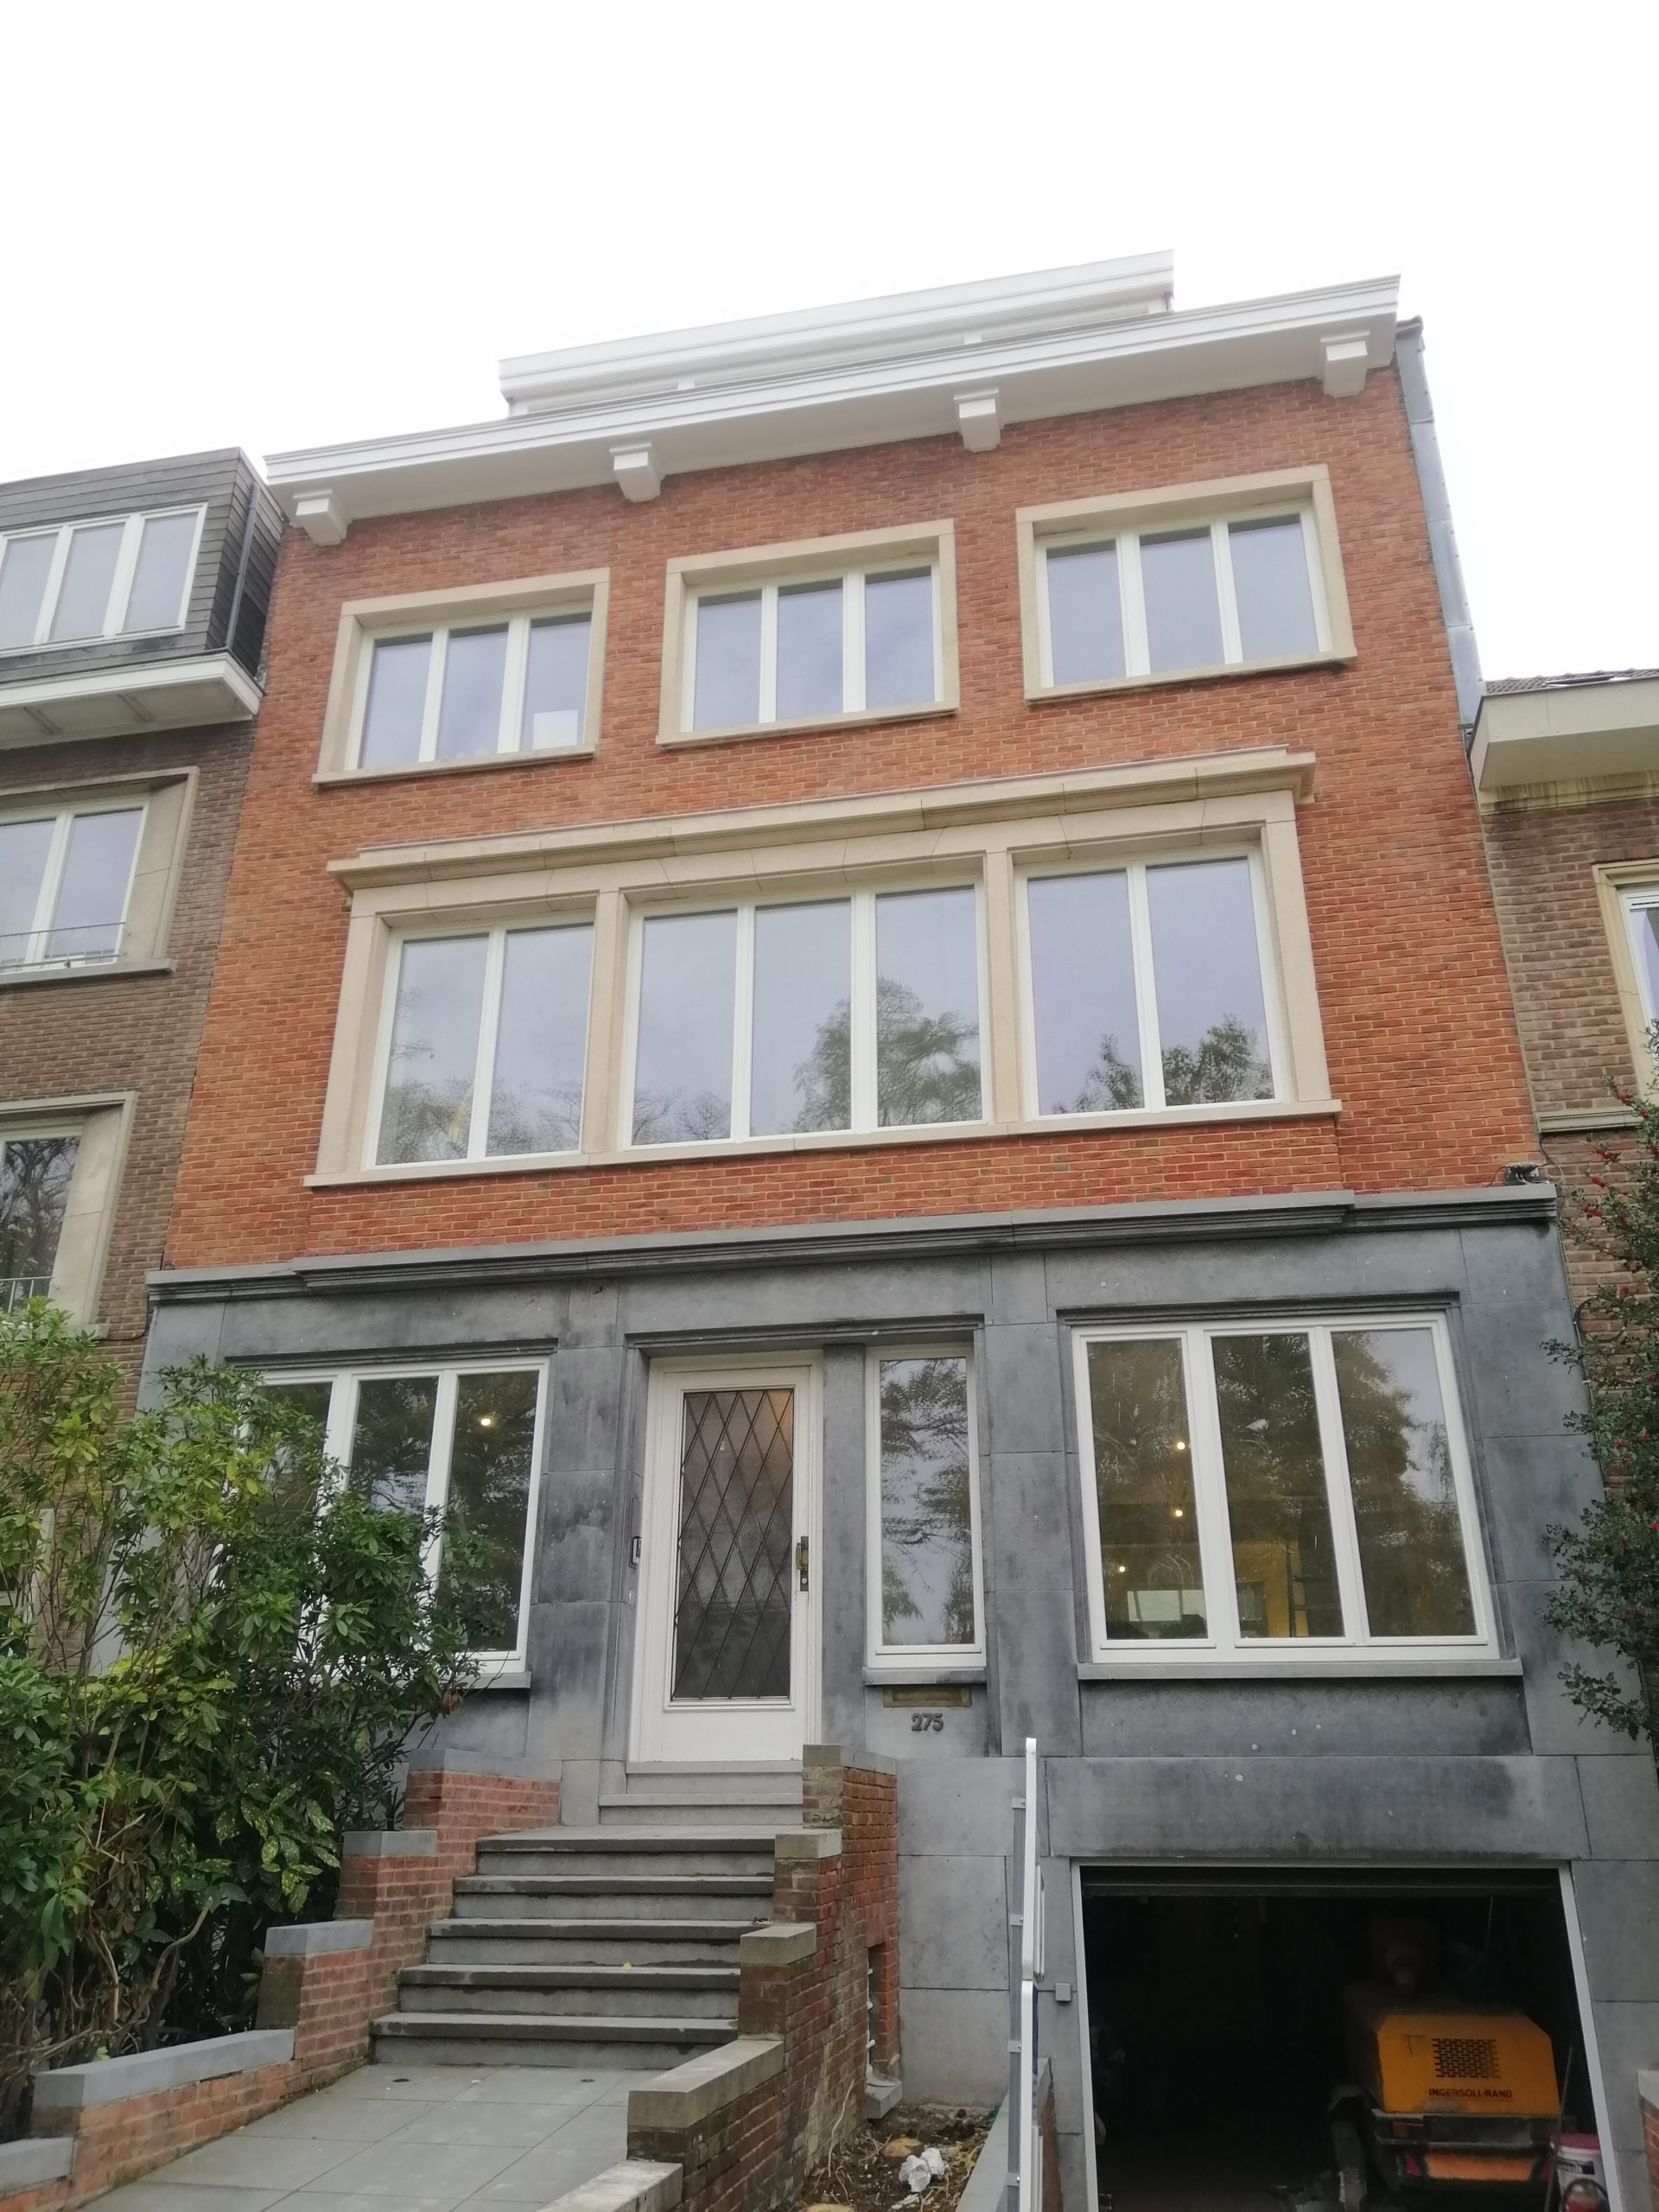 new shared house opening in Brussels for a vived community of expats and young workers